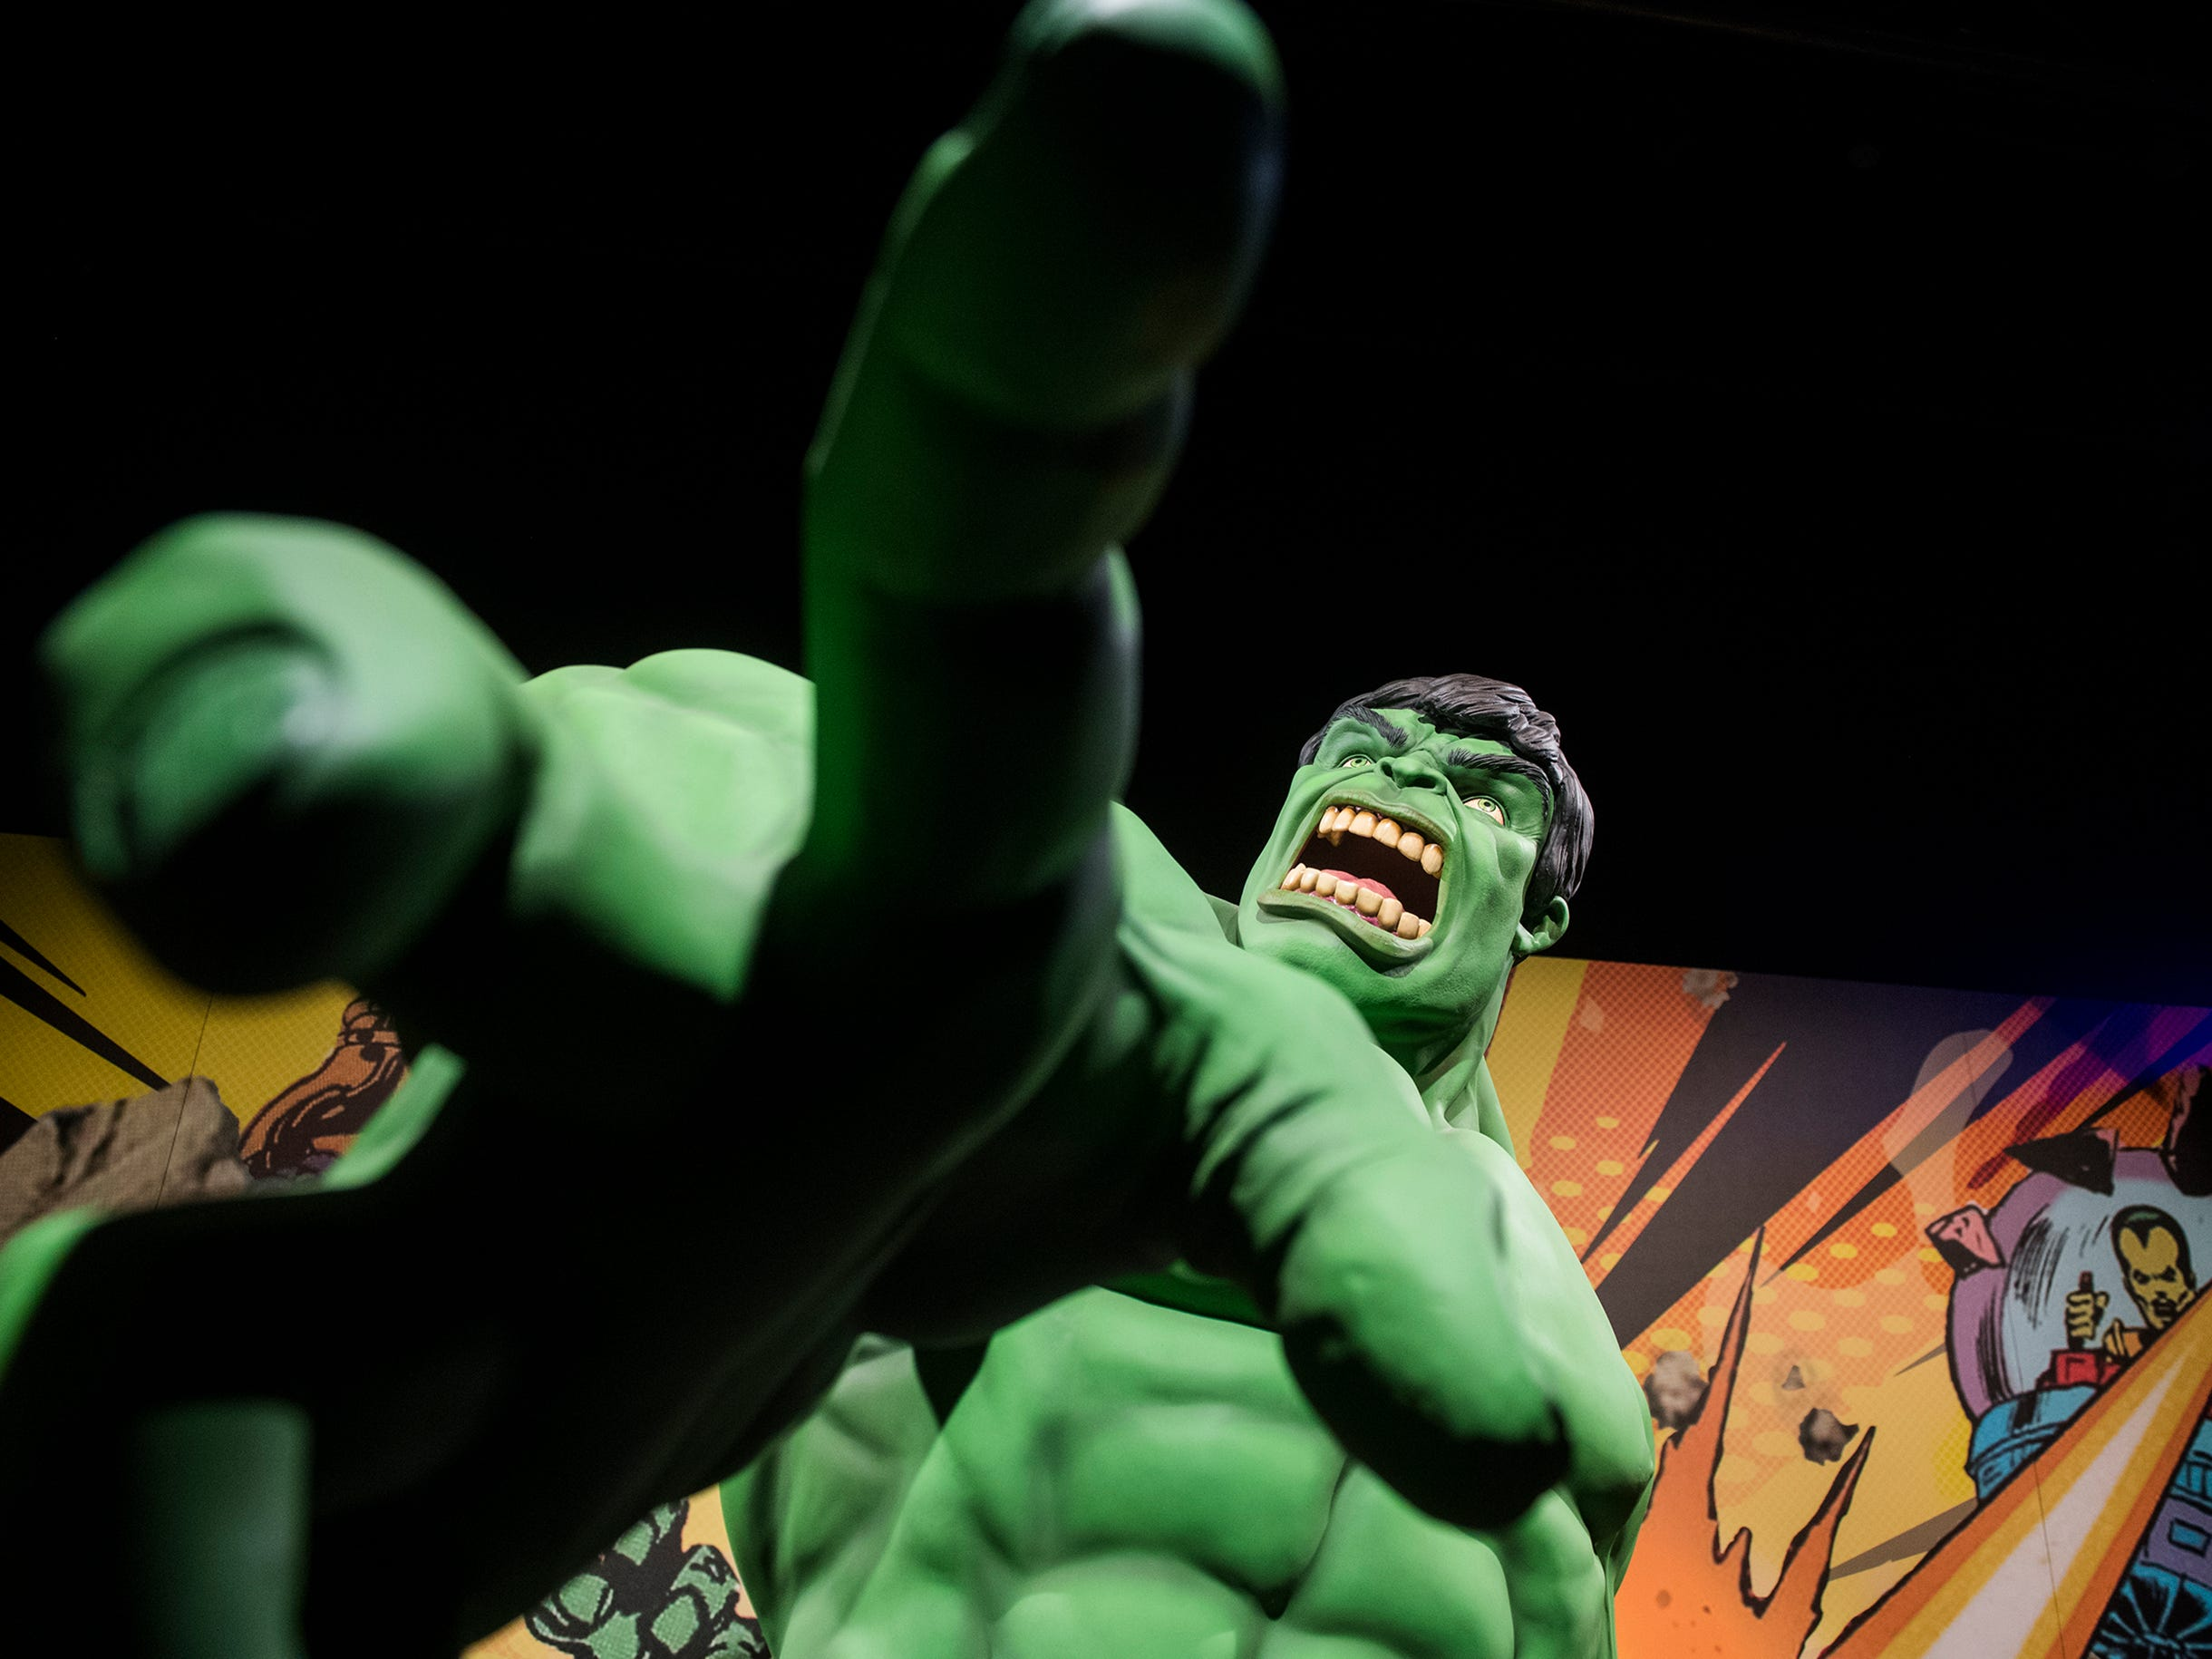 Close up with the Hulk inside the new 'Marvel: Universe of Super Heroes' installation at the Franklin Institute Friday, April 12, 2019 in Philadelphia, Pa. The exhibit runs from April 13-September 2.